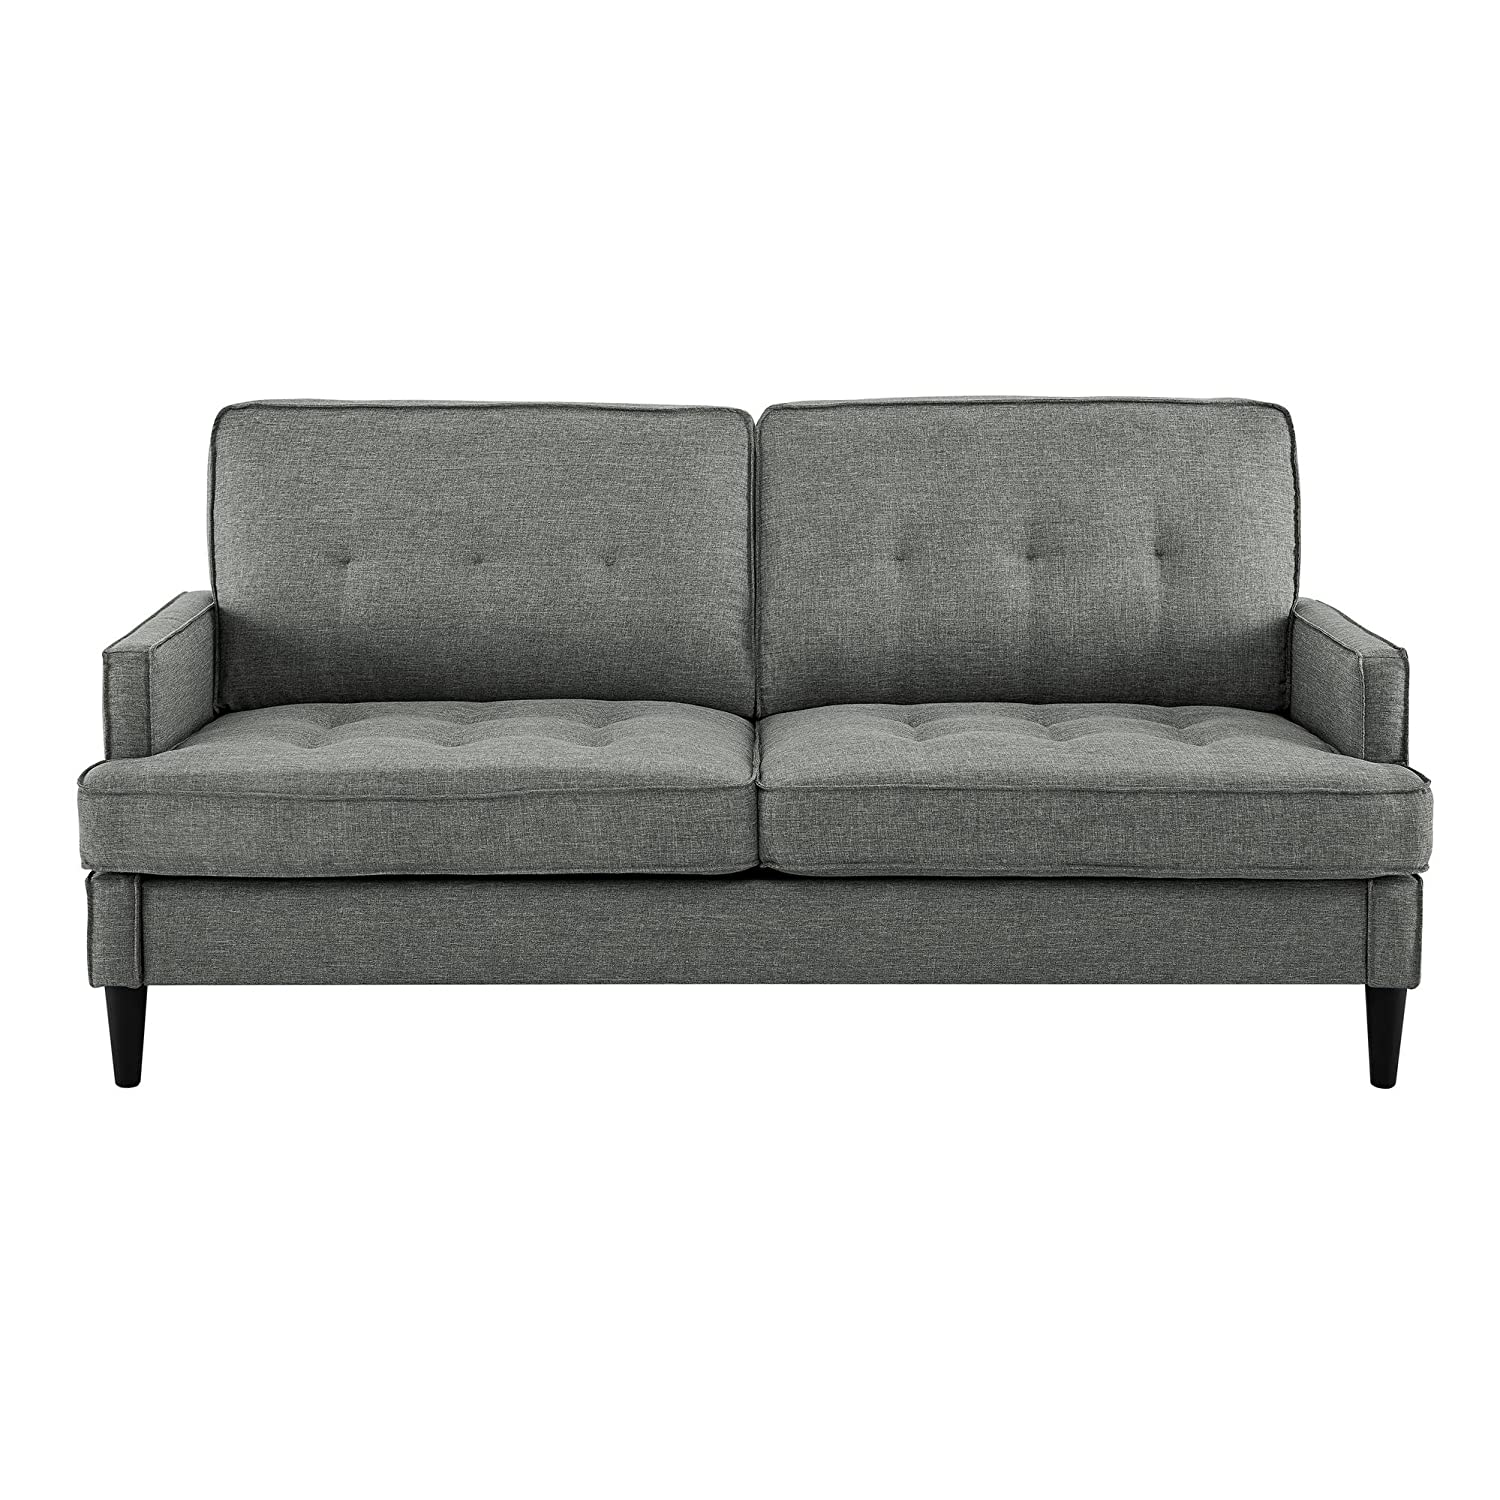 Dorel Living Marley Sofa, Gray